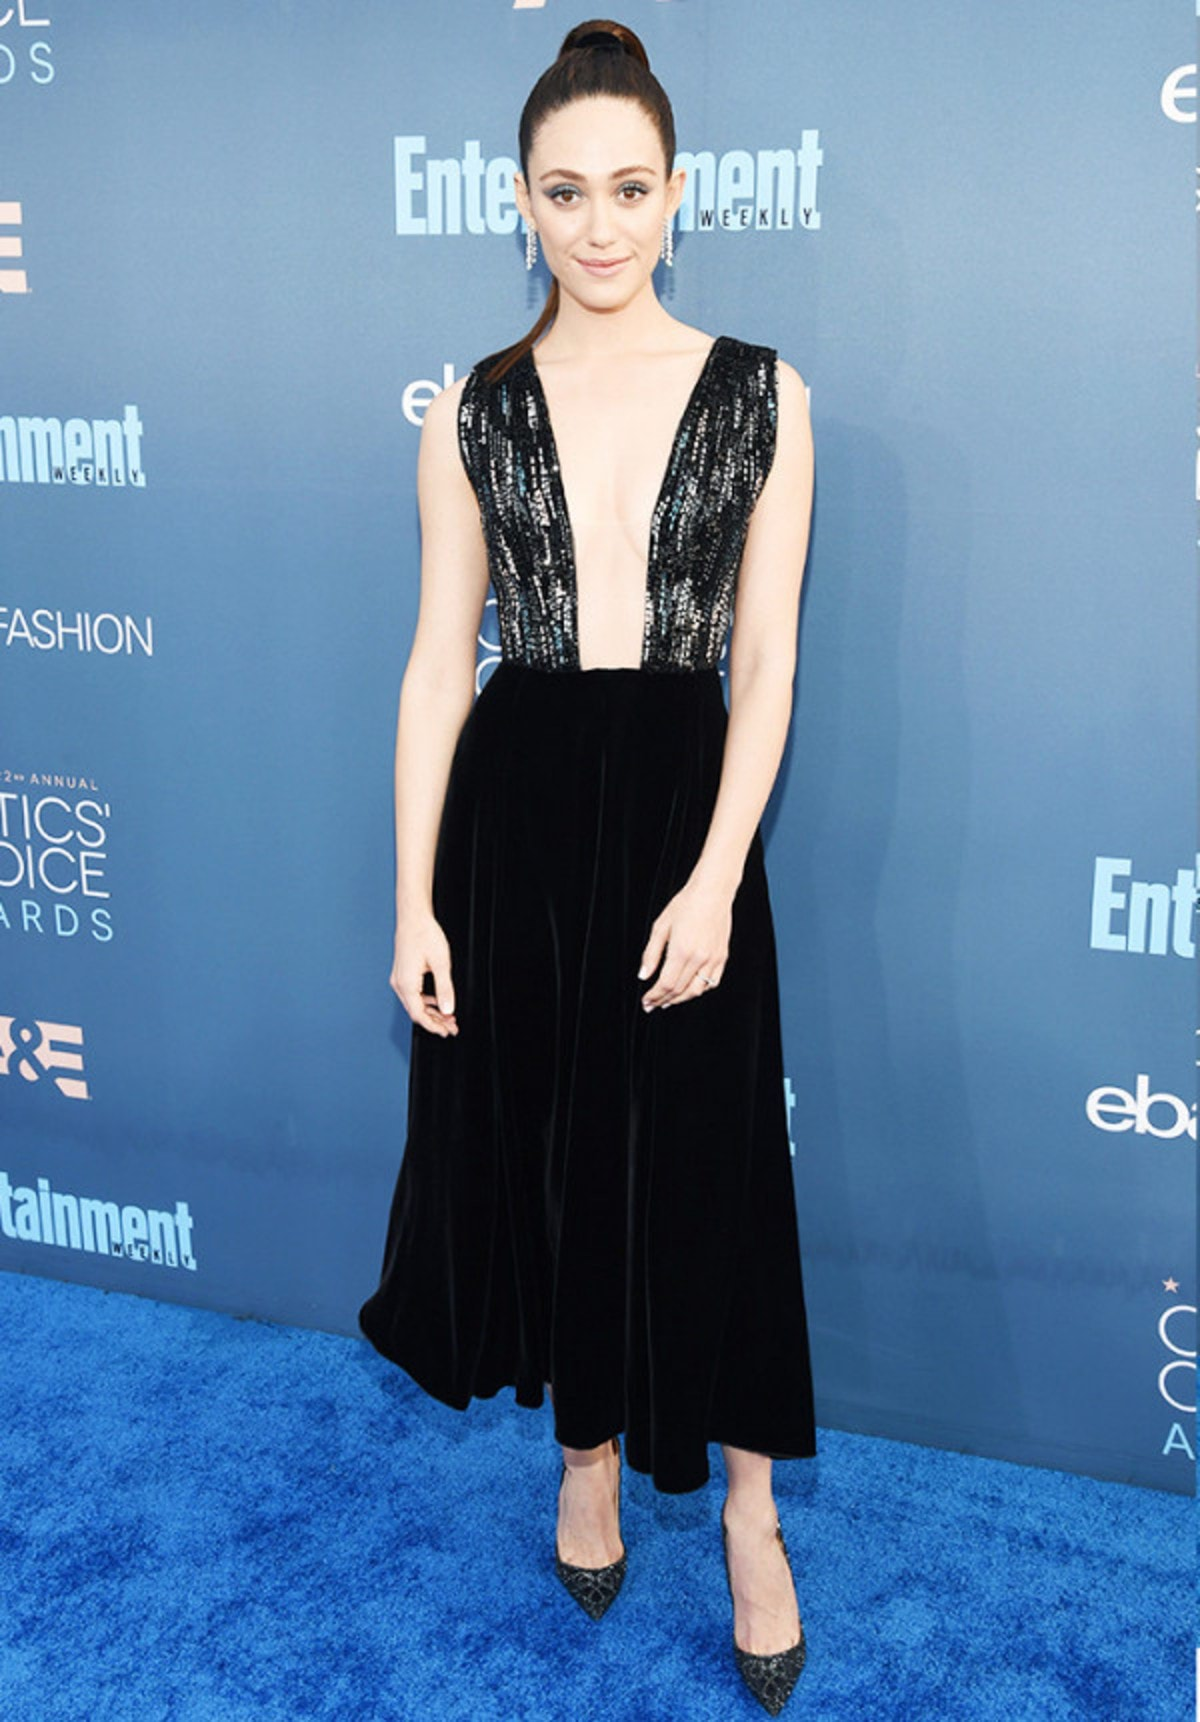 the-best-red-carpet-looks-from-the-critics-choice-awards-2075073.600x0c